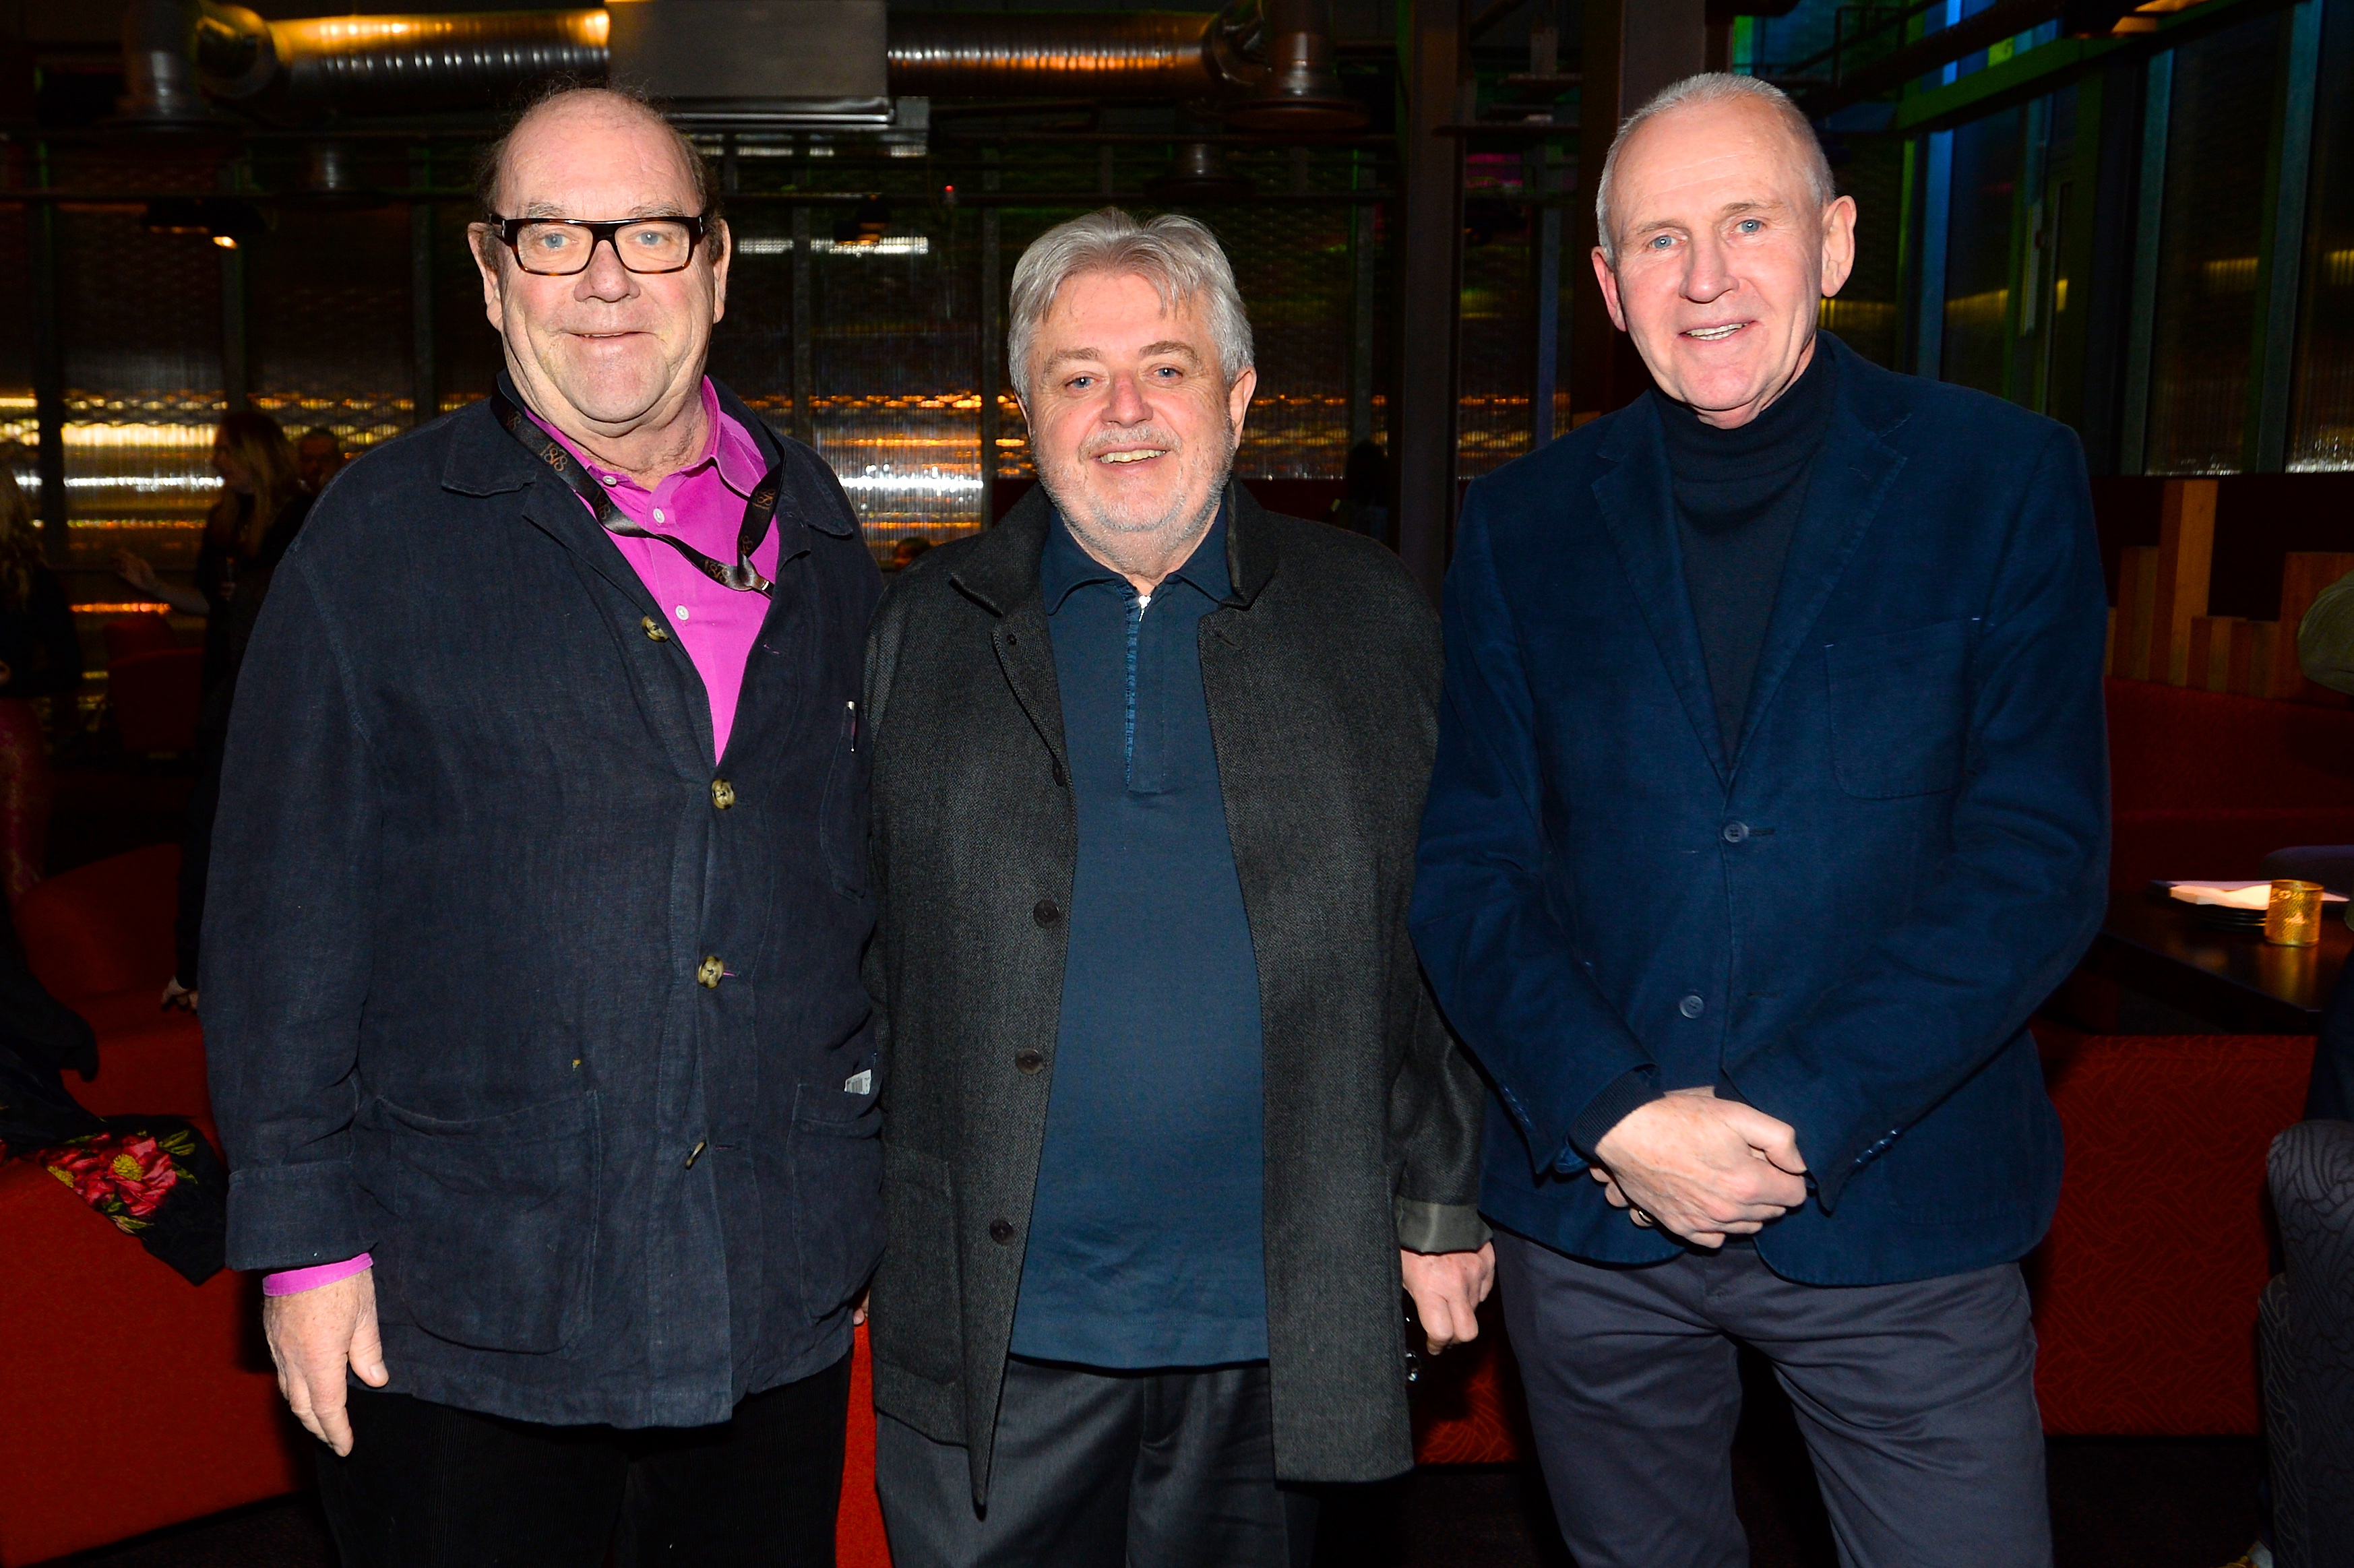 Paul McGuinness, Bill Whelan and John Hughes at the album launch of Riverdance  - 25th anniversary show at the 3Arena in Dublin. Photo: Justin Farrelly.